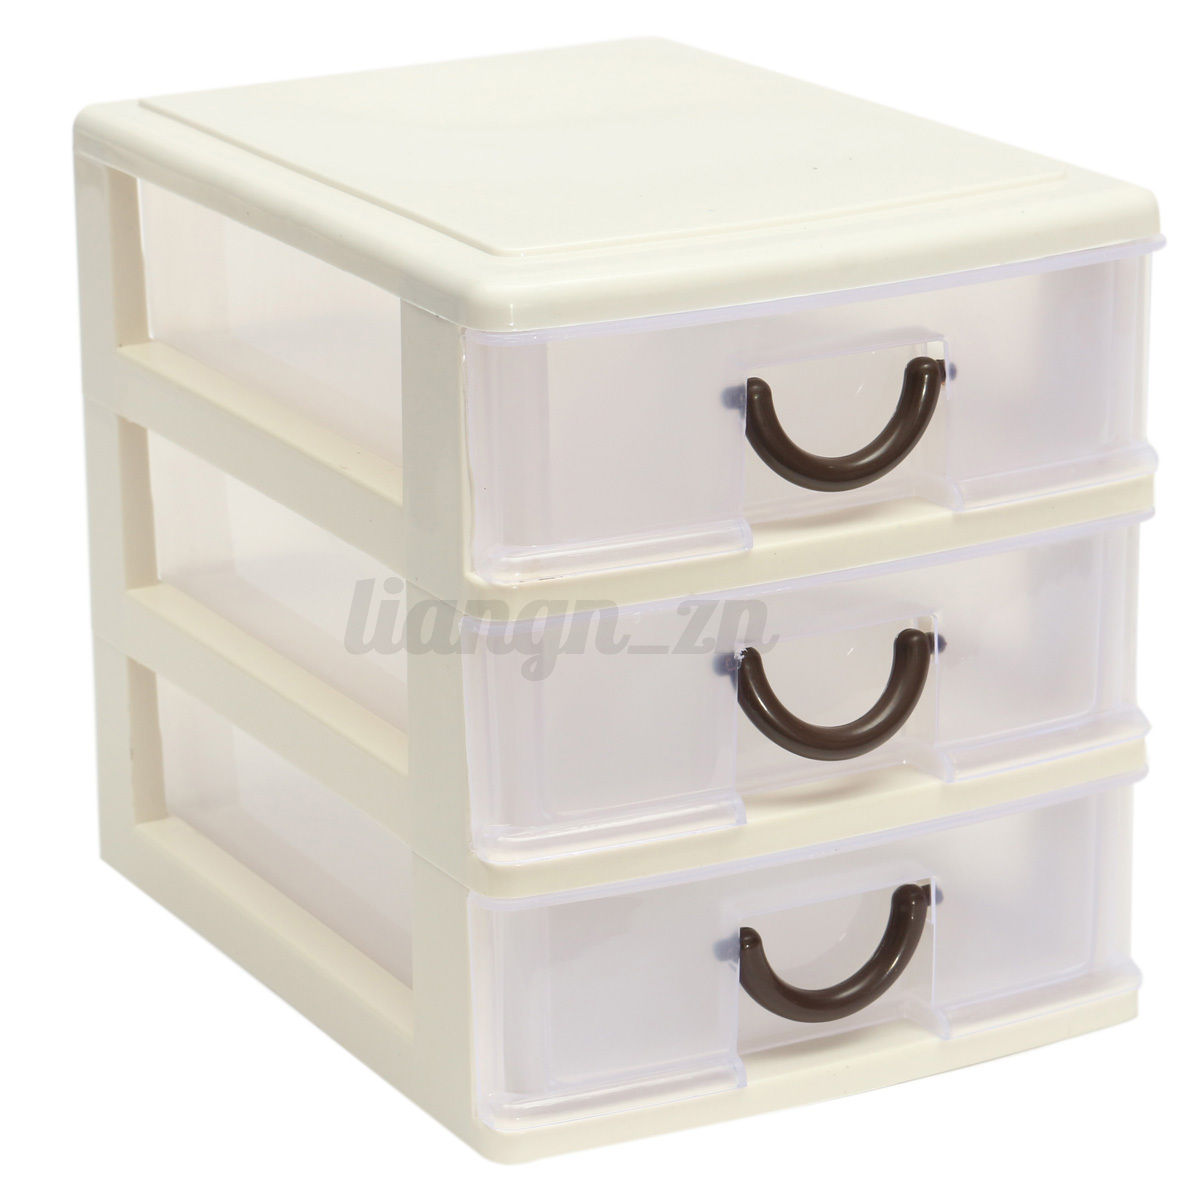 bo te de rangement 2 3 4 tiroirs coffret cosm tique range stockage en plastique ebay. Black Bedroom Furniture Sets. Home Design Ideas